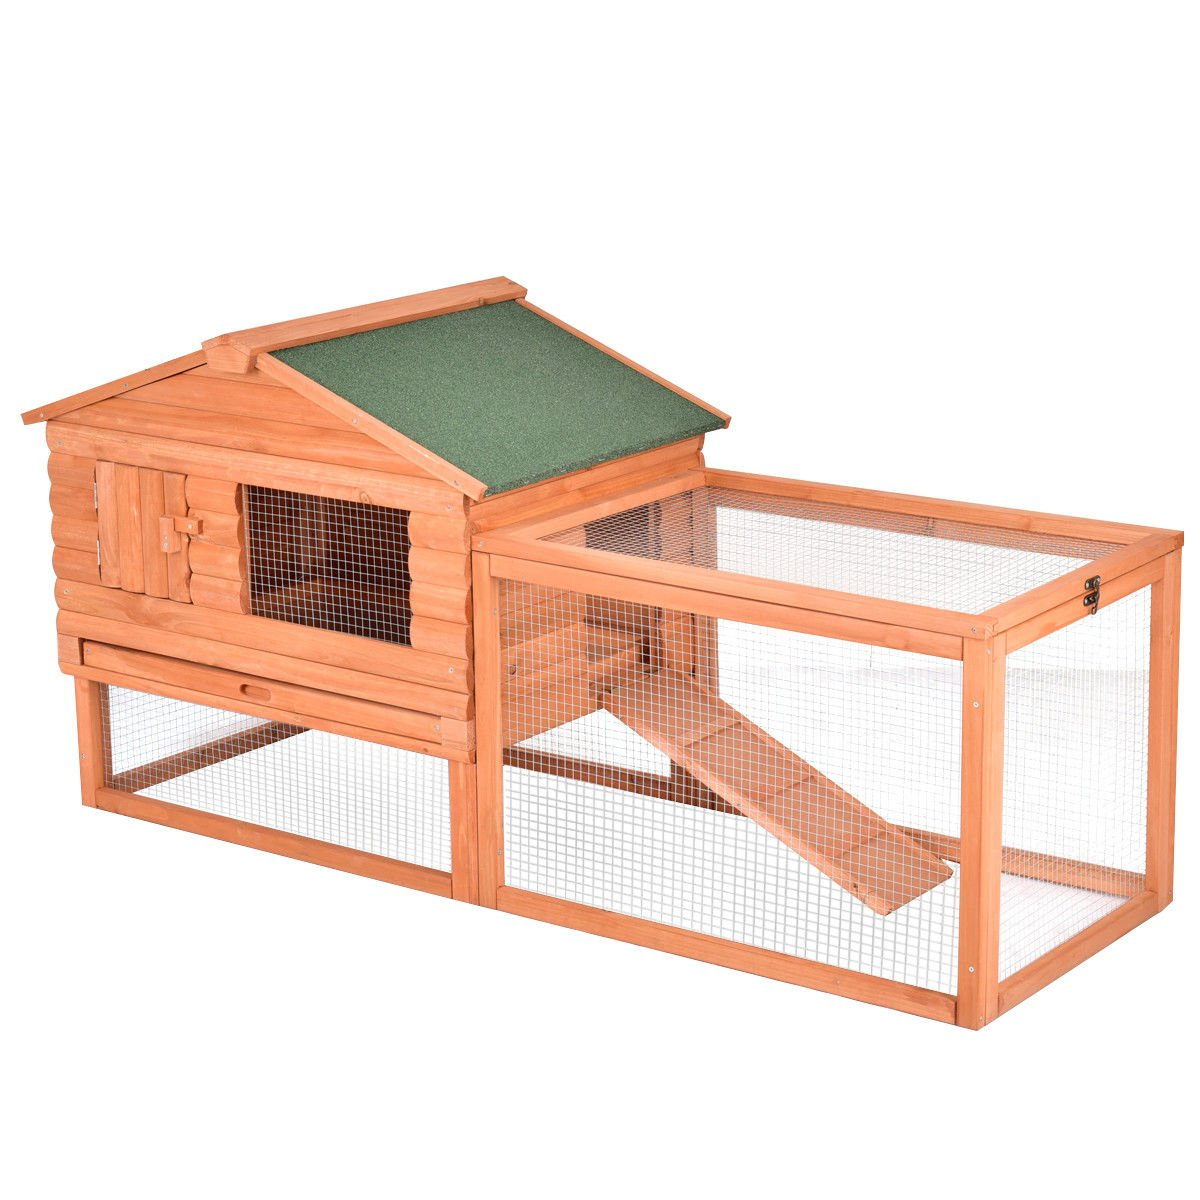 Tangkula Chicken Coop 64'' Rabbit Hutch Wooden Garden Backyard Bunny Hen House Pet Supplies with Run